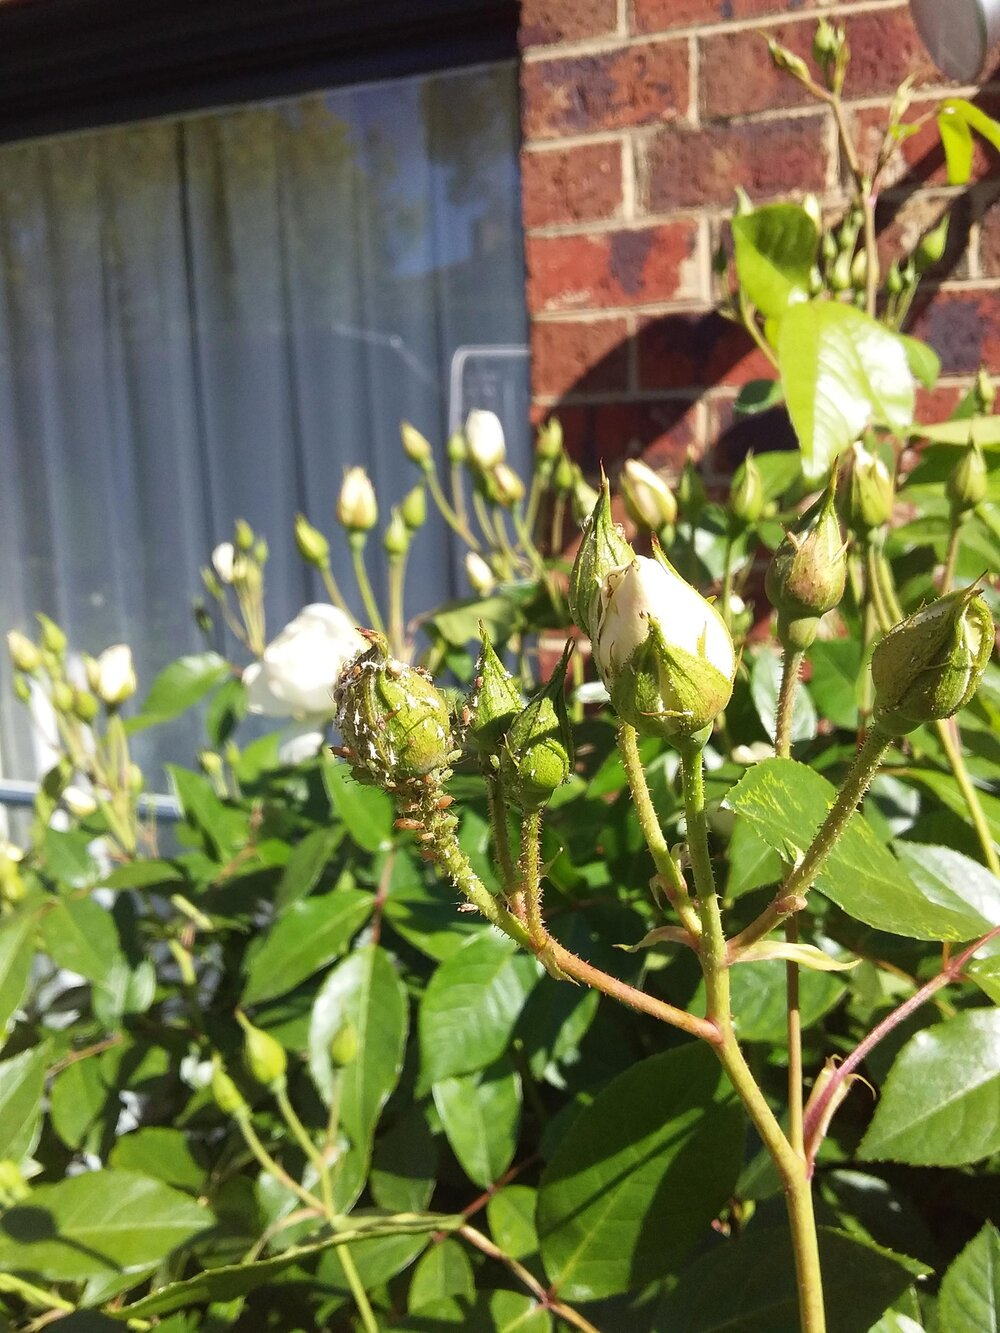 Rosebuds infested with aphid insect pests. Photo via Plants Grow Here